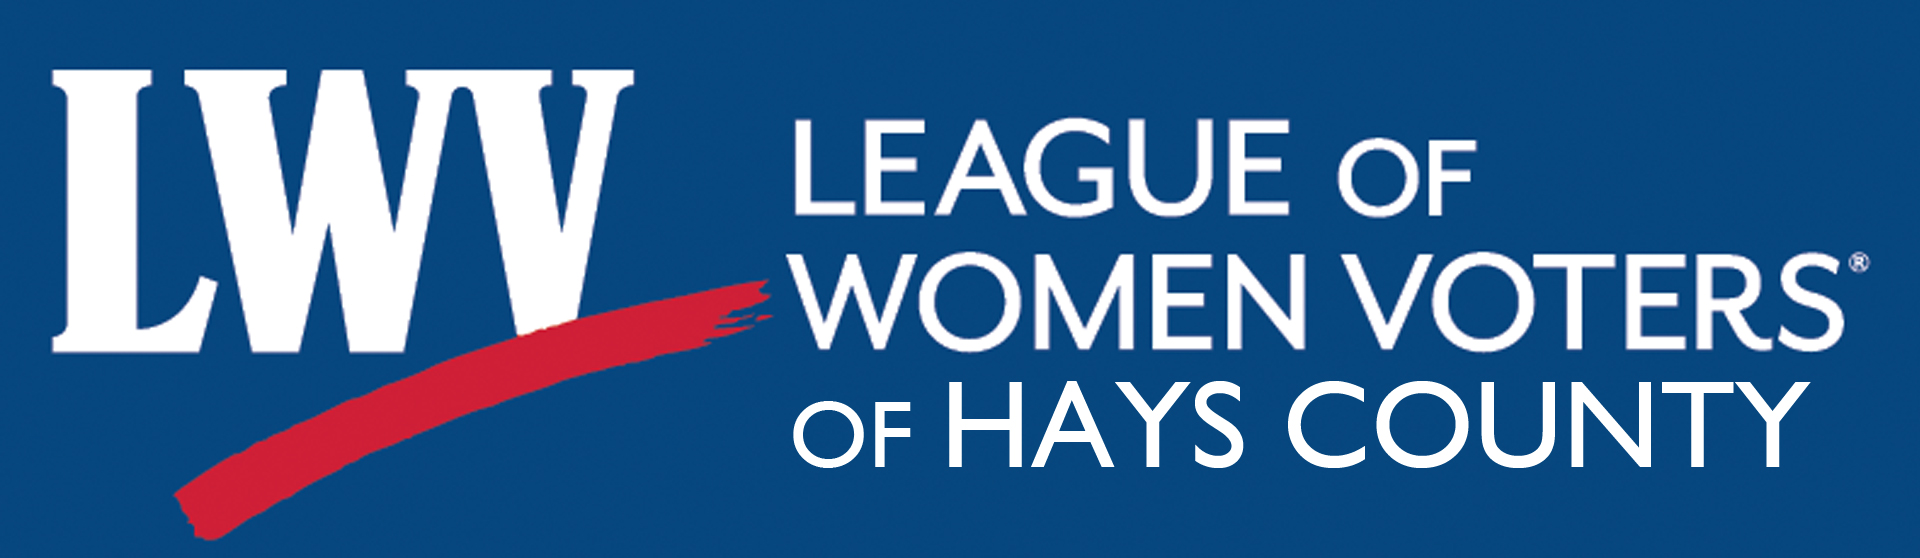 League of Women Voters of Hays County